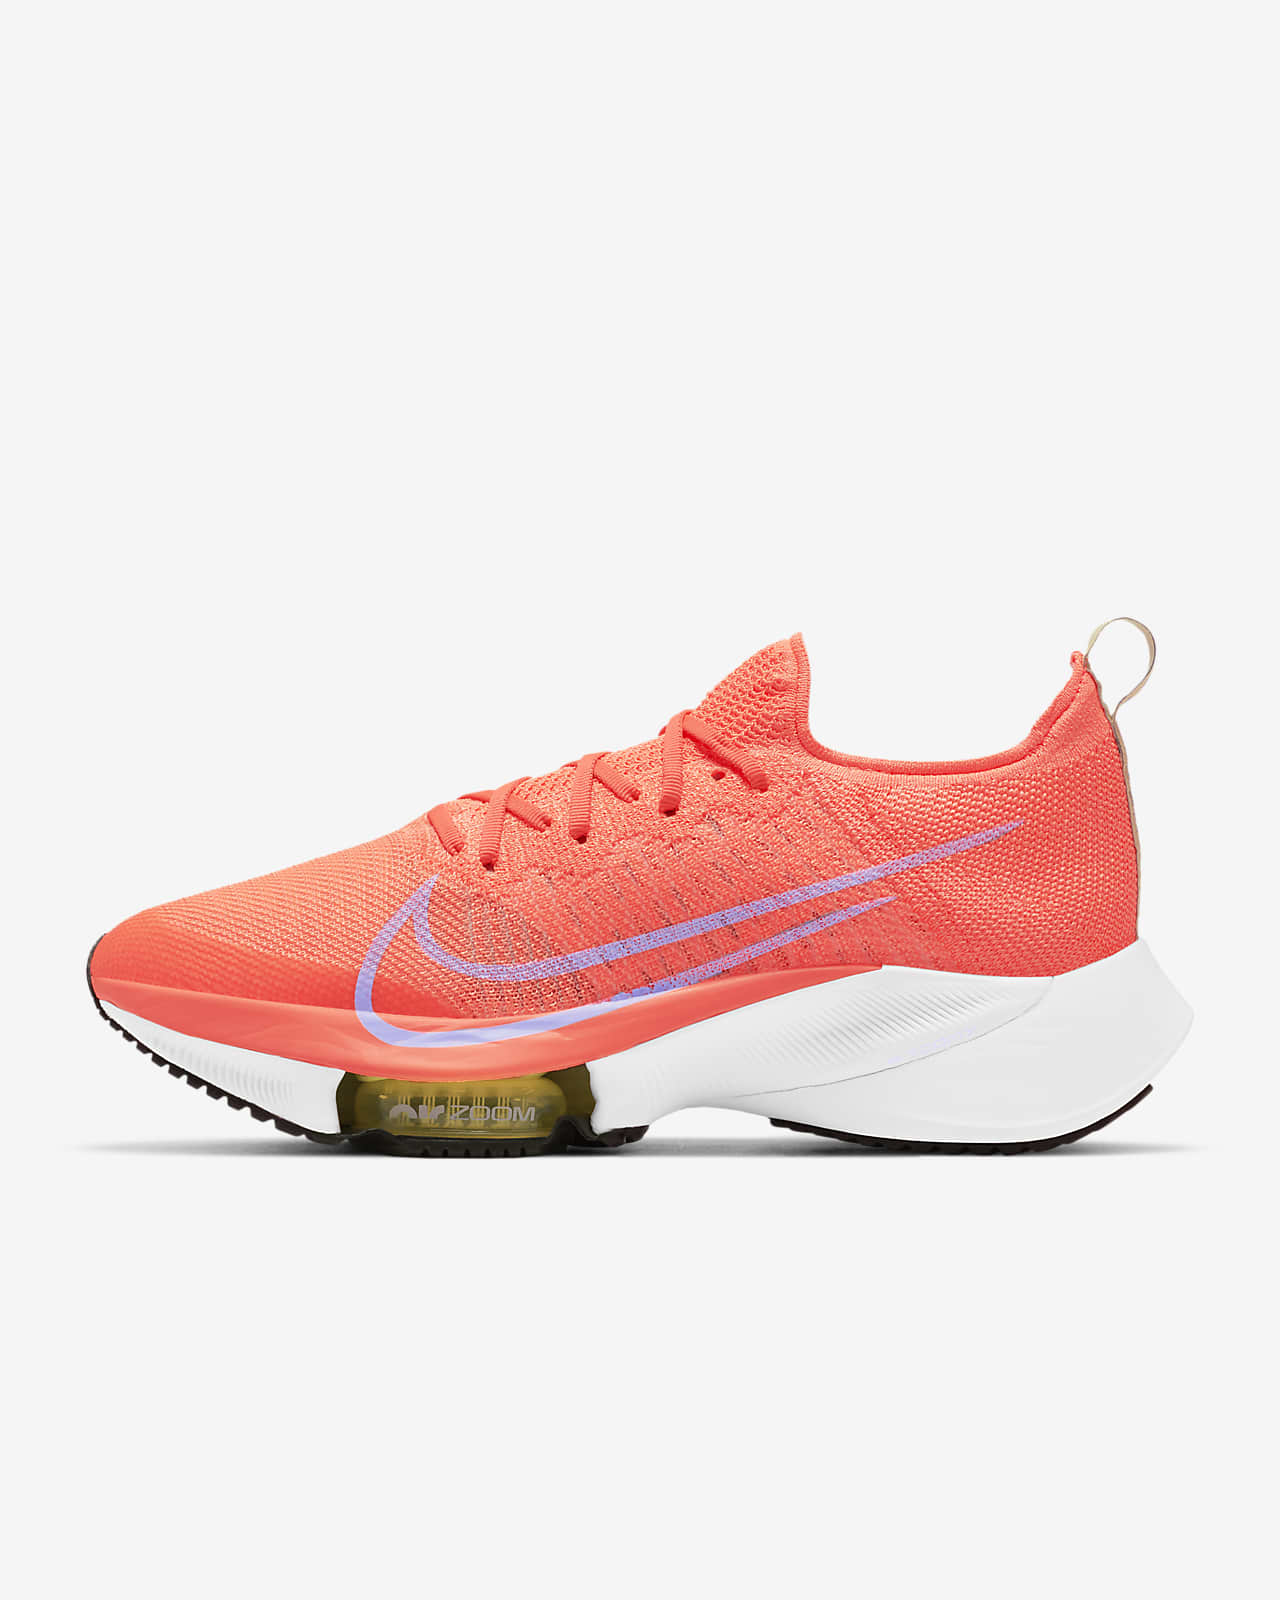 Nike Air Zoom Tempo NEXT% Women's Road Running Shoes